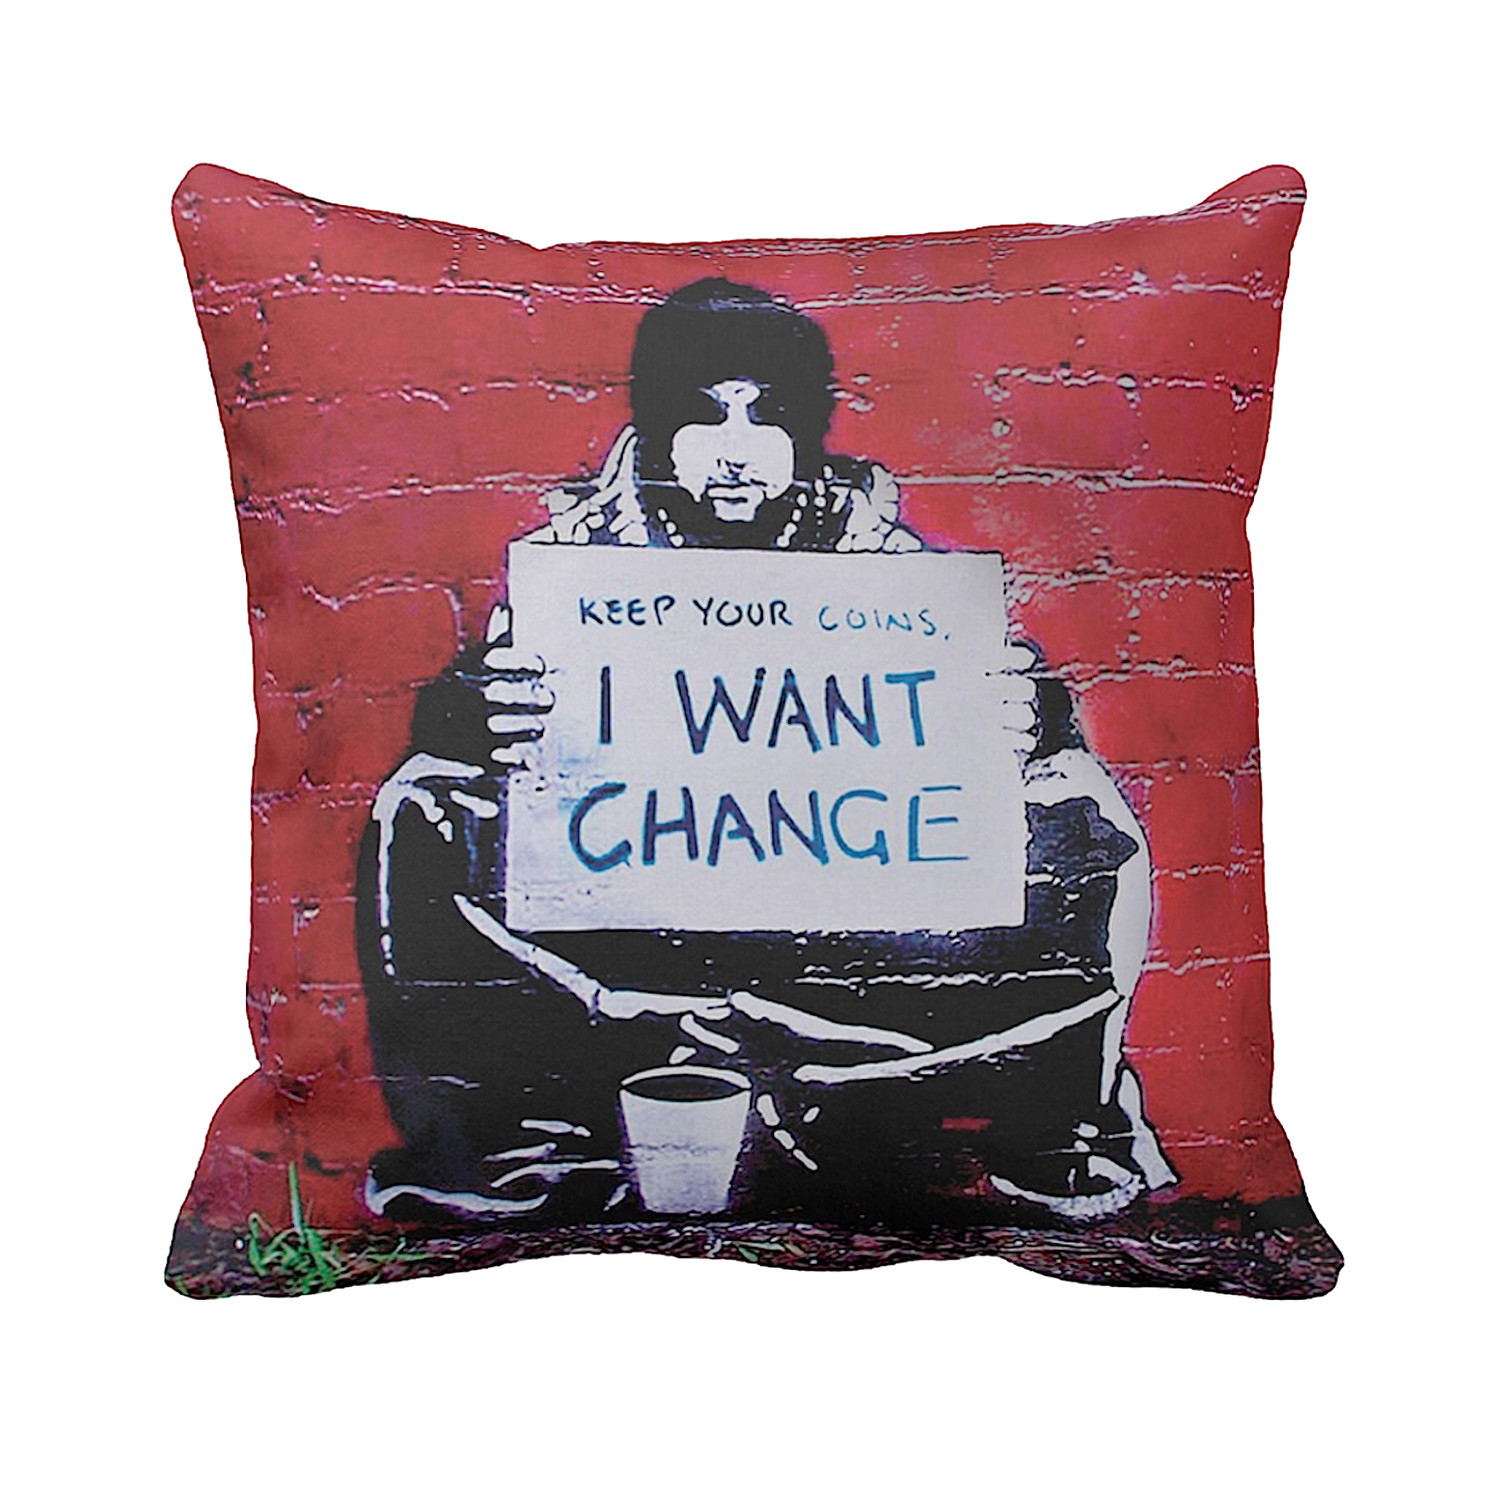 Pillows Melbourne Keep Your Coins I Want Change Melbourne Banksy Pillows Touch